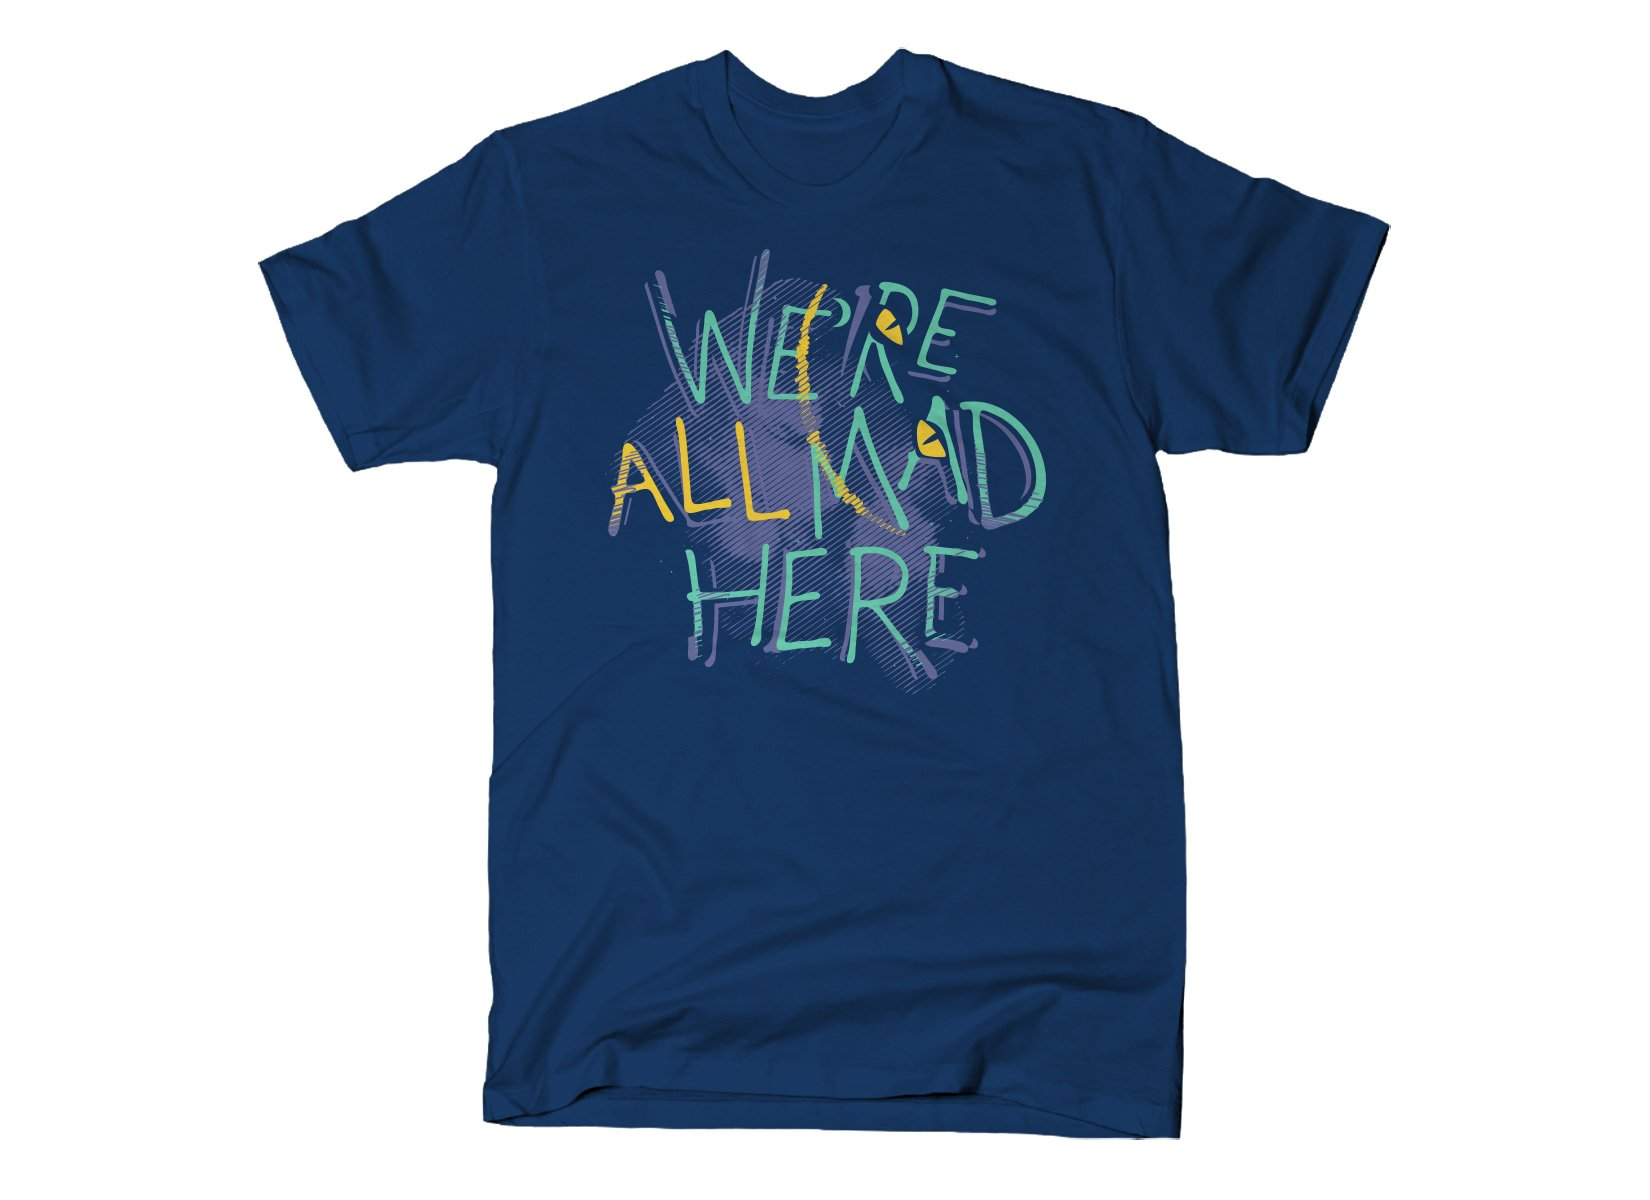 We're All Mad Here on Mens T-Shirt